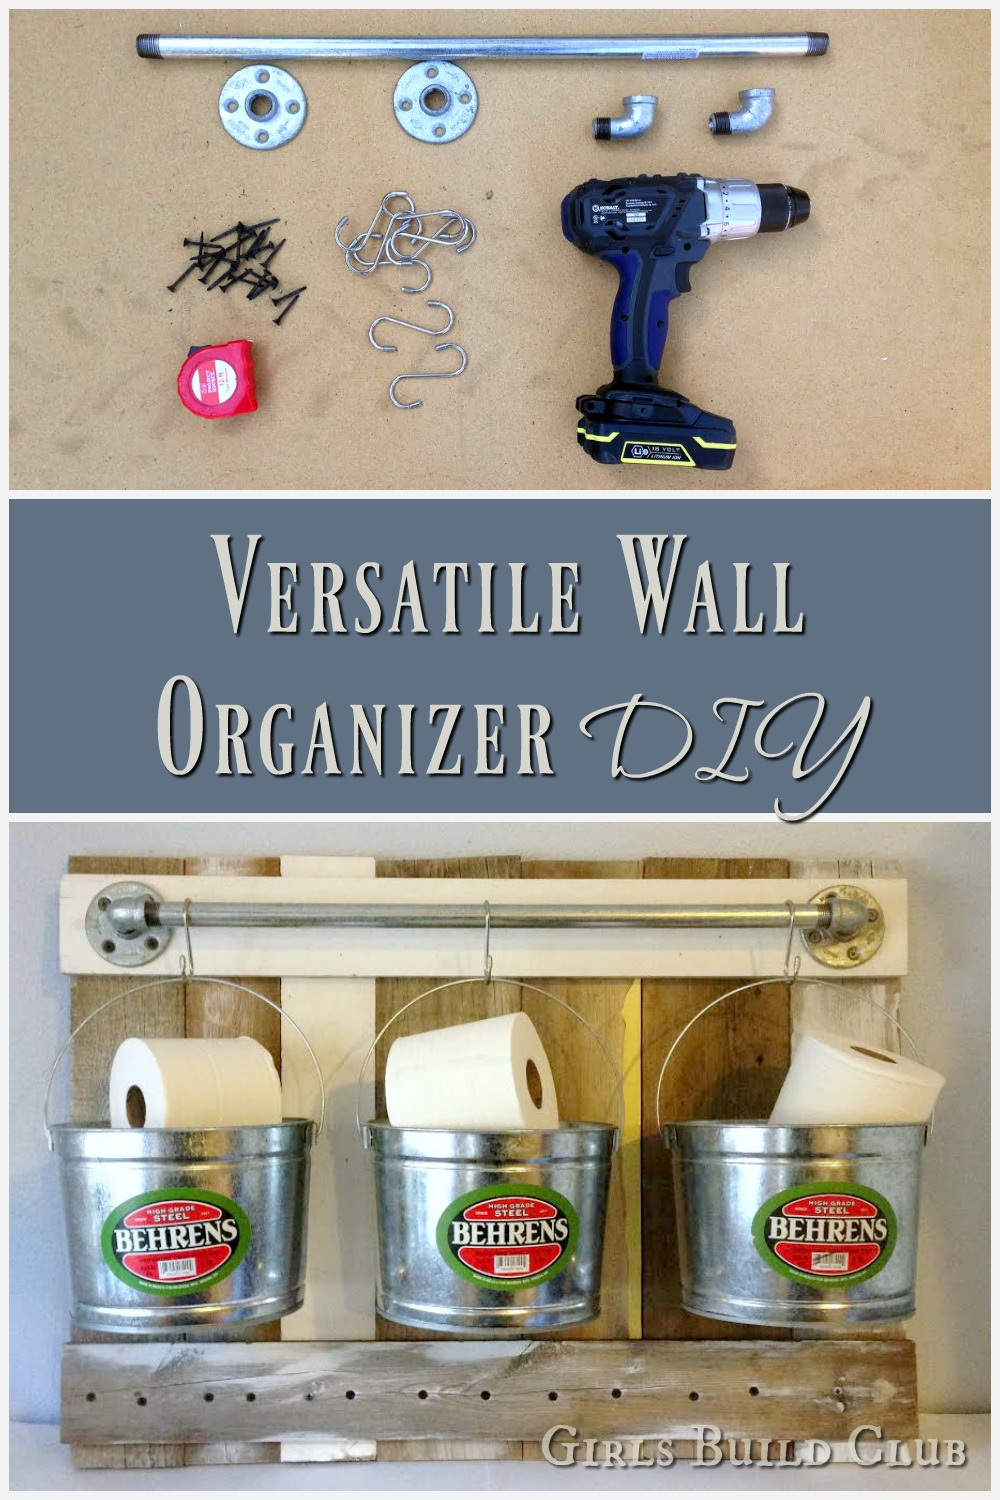 Organize your bathroom and de-clutter! I built this wall organizer out of scrap wood, pipe, and addes some galvanized buckets. Totally helps get the clutter off your counter and looks good too. rustic farmhouse style bathroom.